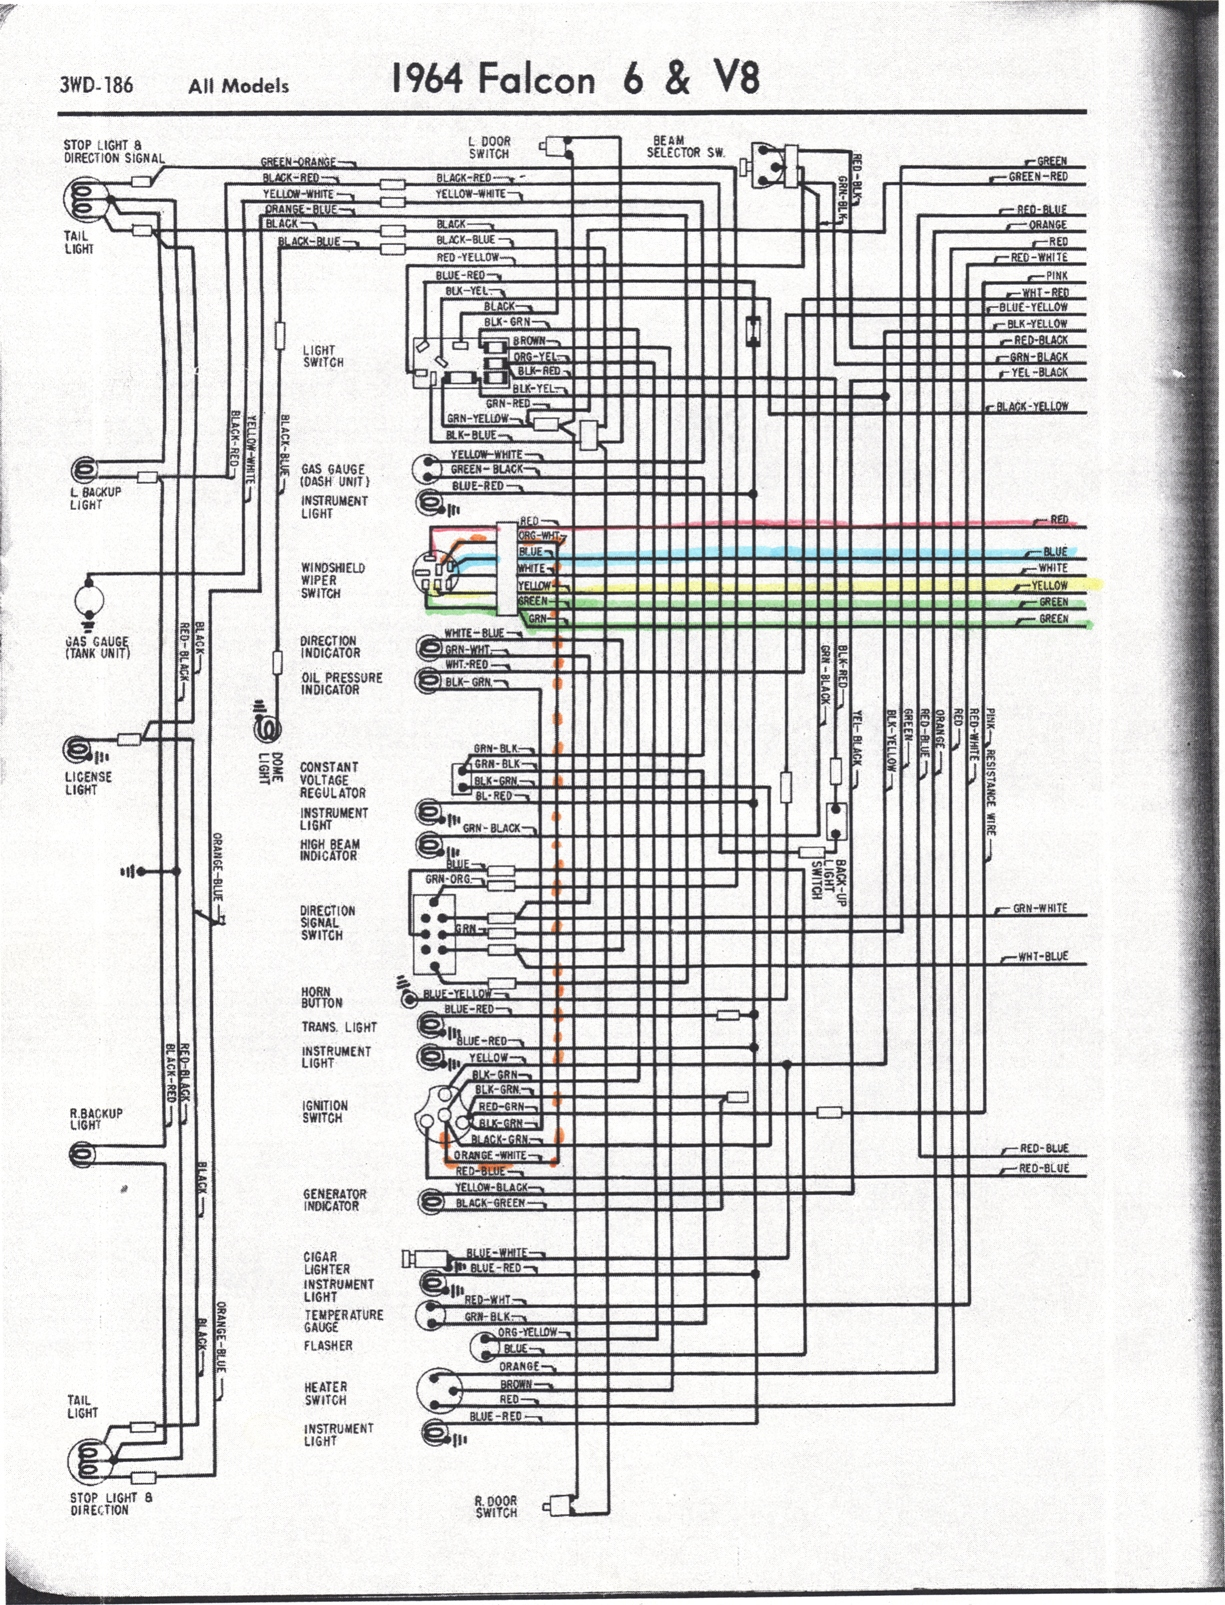 WRG-1299] Ford Falcon Ignition Wiring Diagram